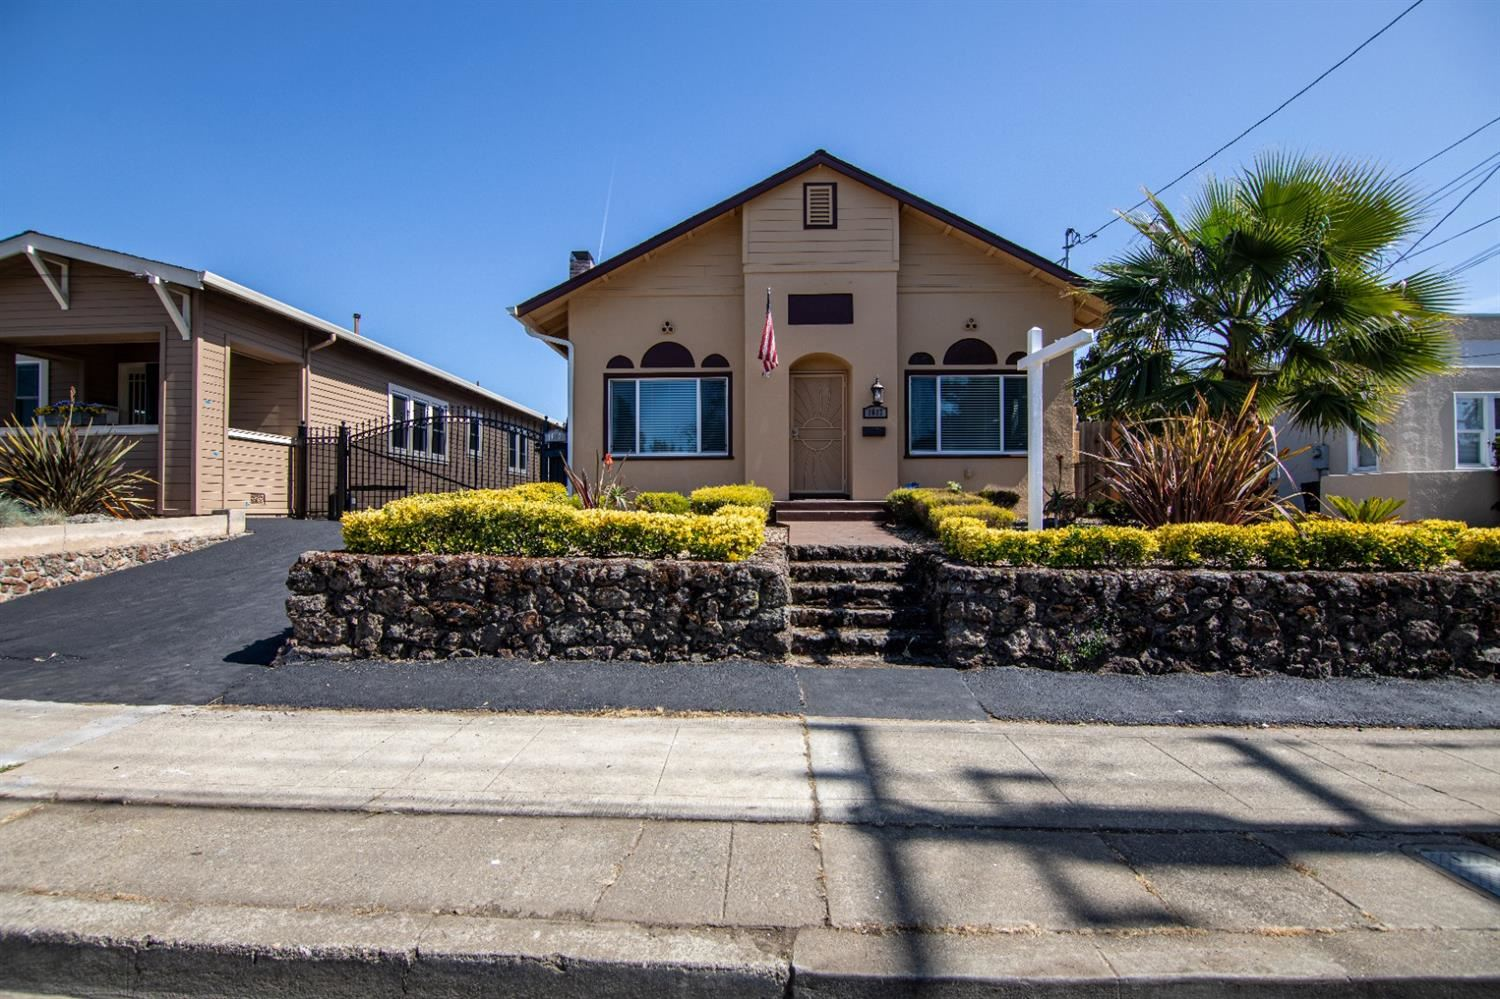 Photo of 1617 D Street, Hayward, CA 94541 (MLS # 221048957)